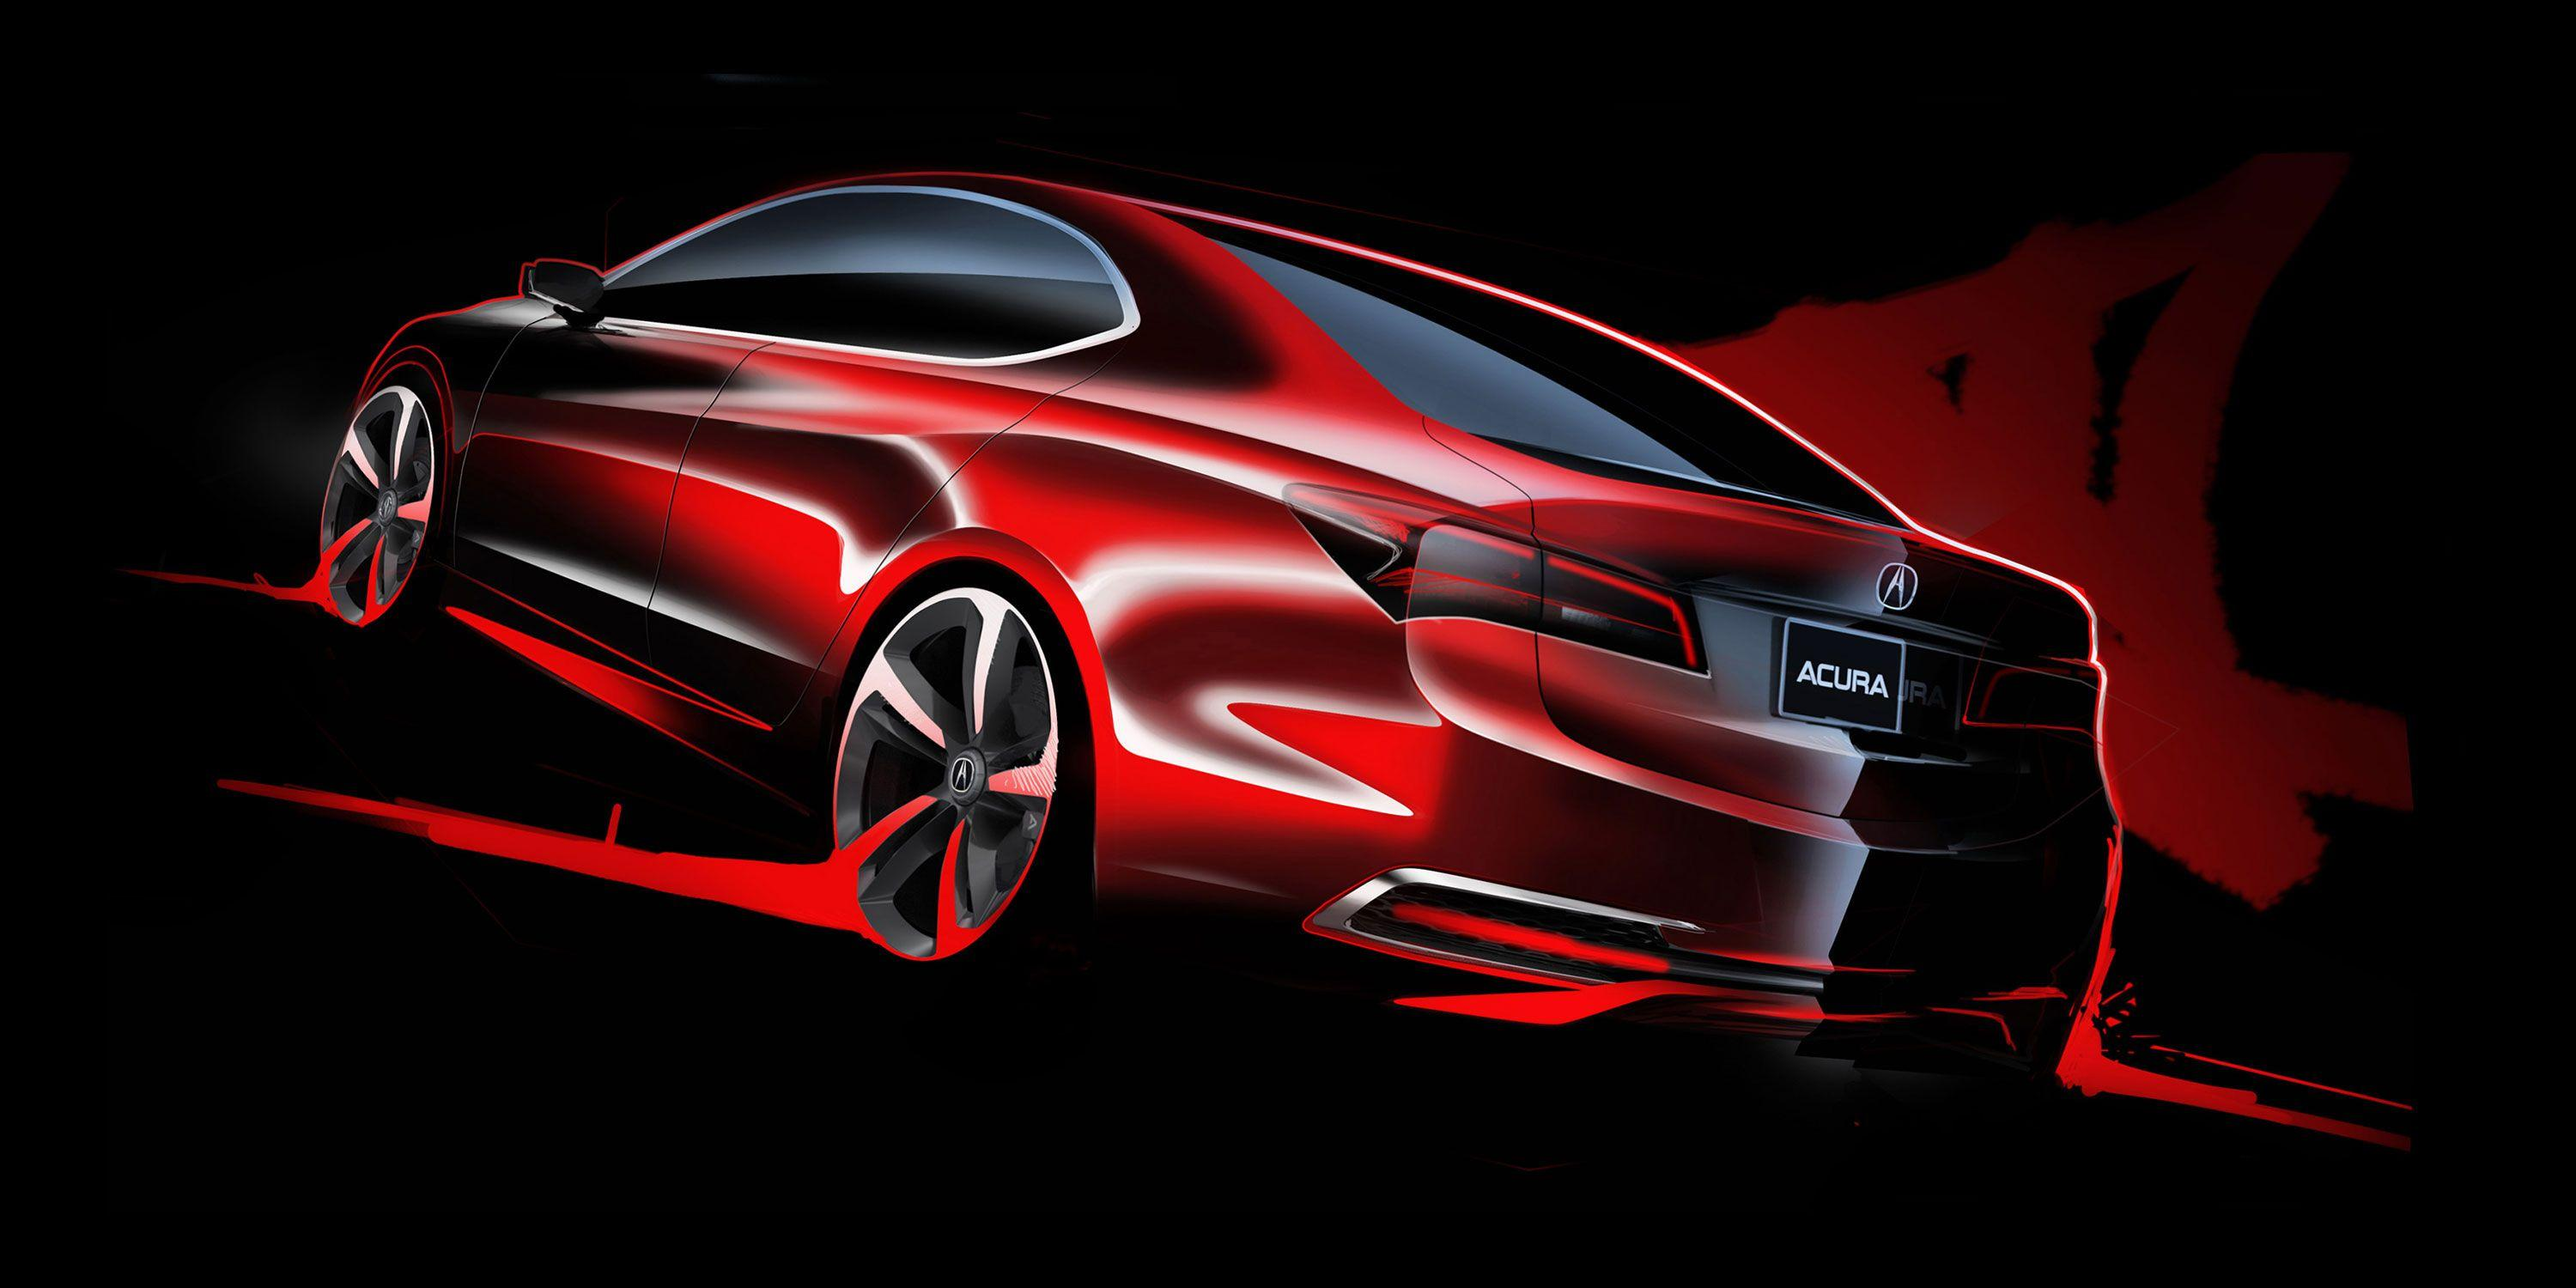 Acura TLX Car Design Wallpaper - gearheadwallpapers